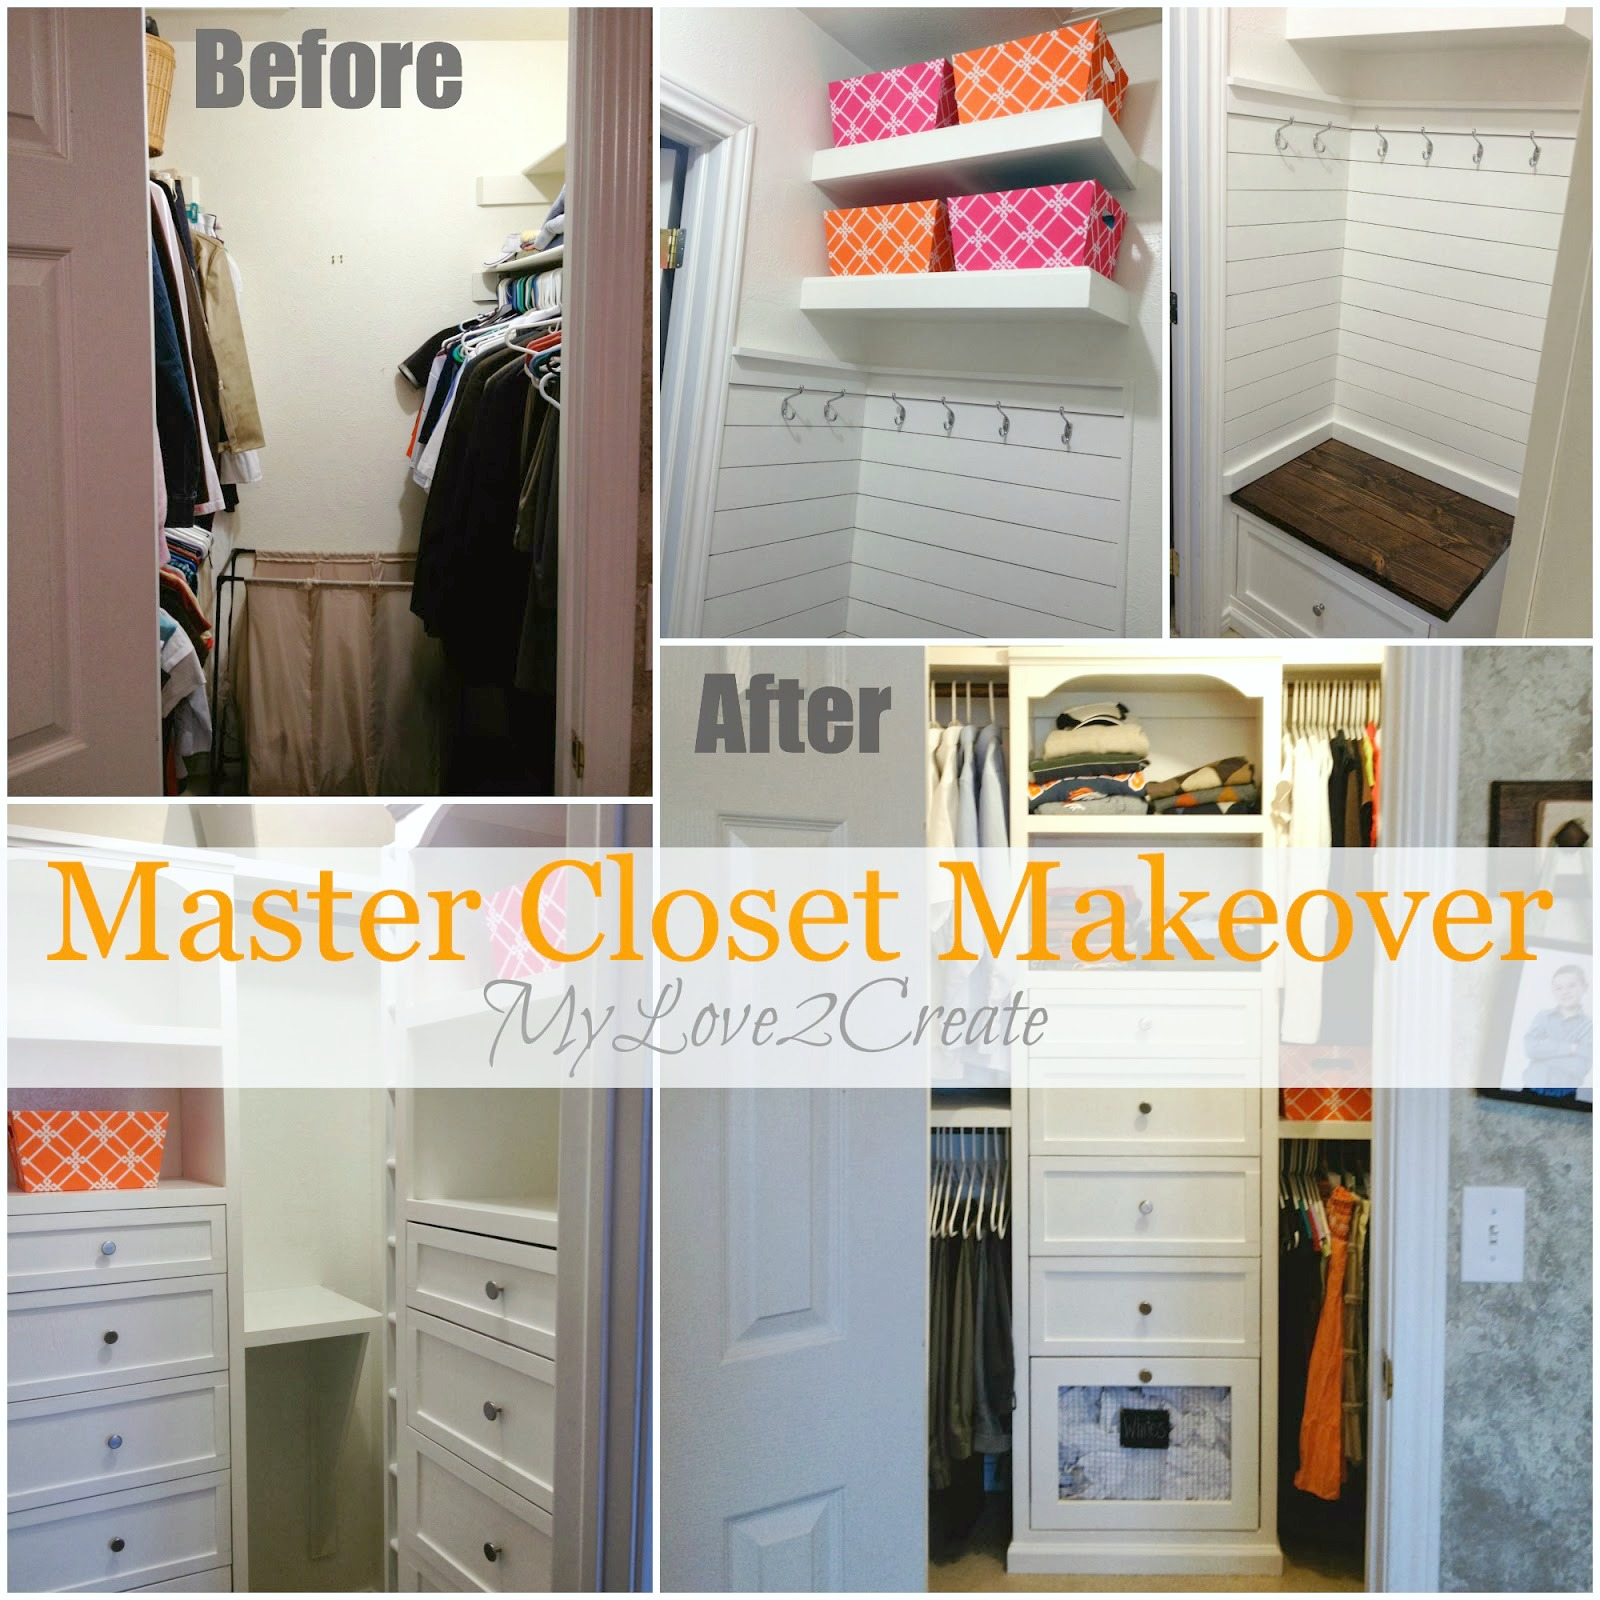 Create a beautiful and efficient Master Closet on a budget!